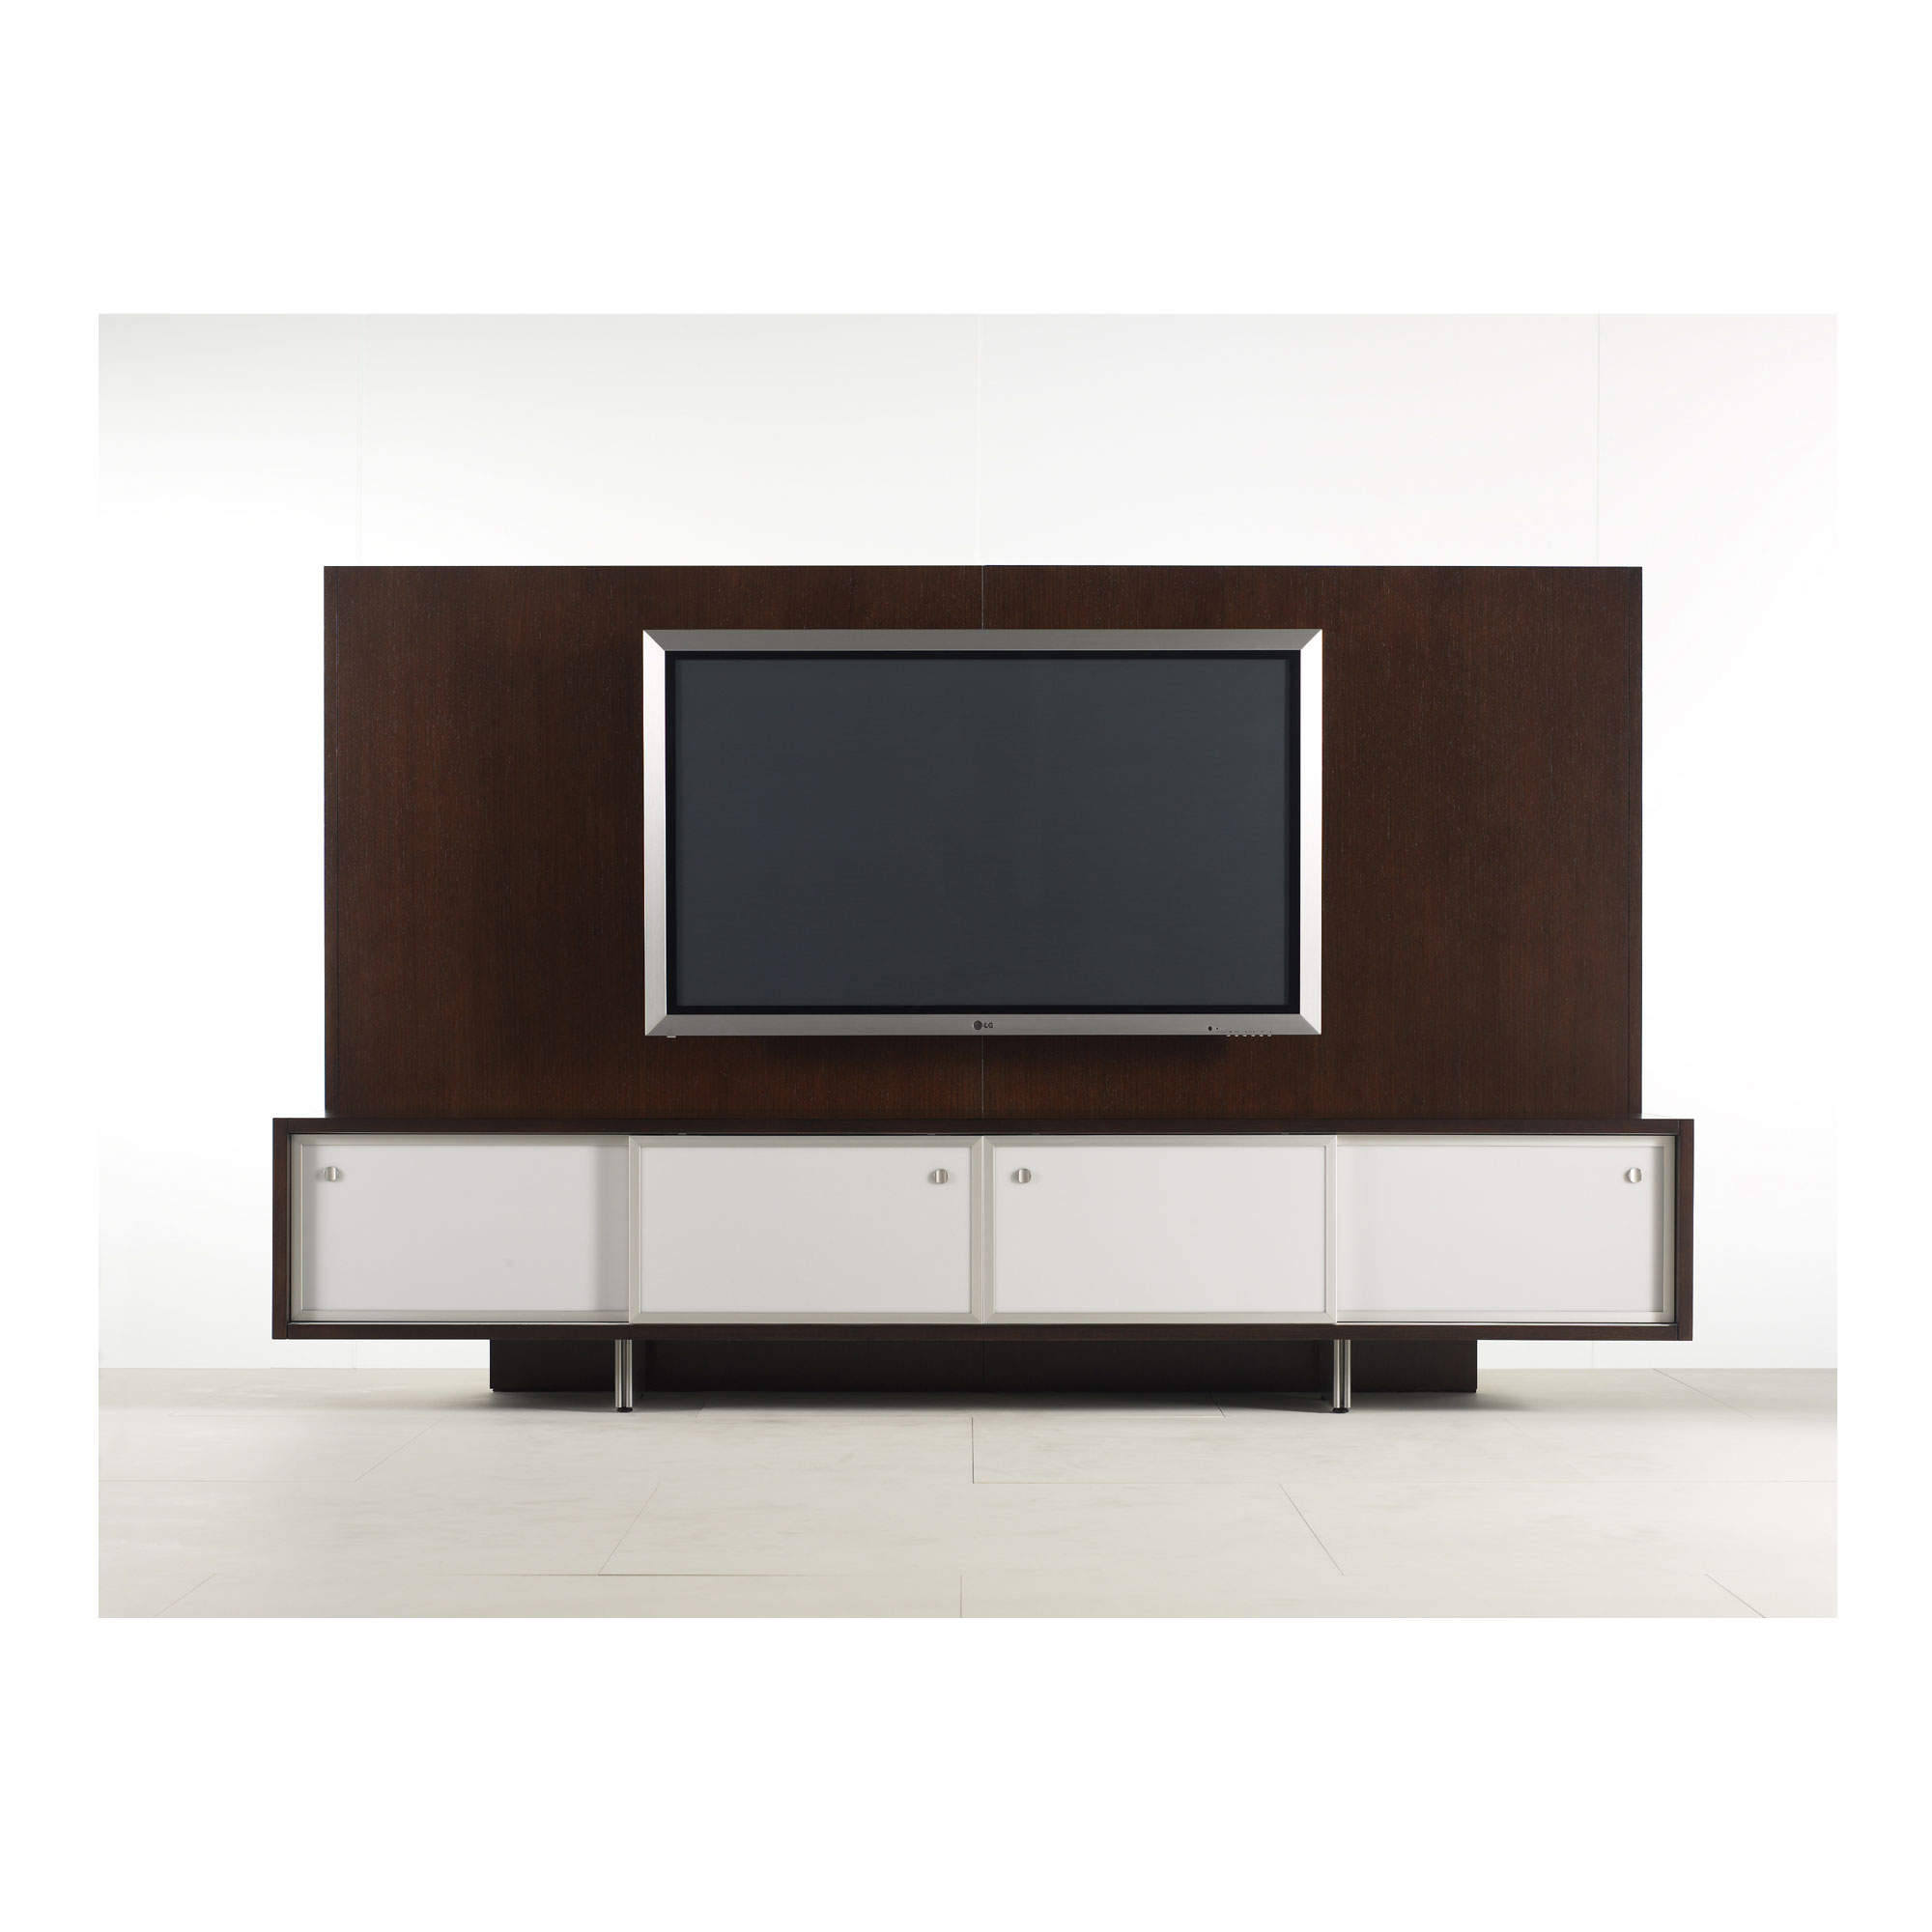 tv credenza with sliding cabinetry doors featuring our